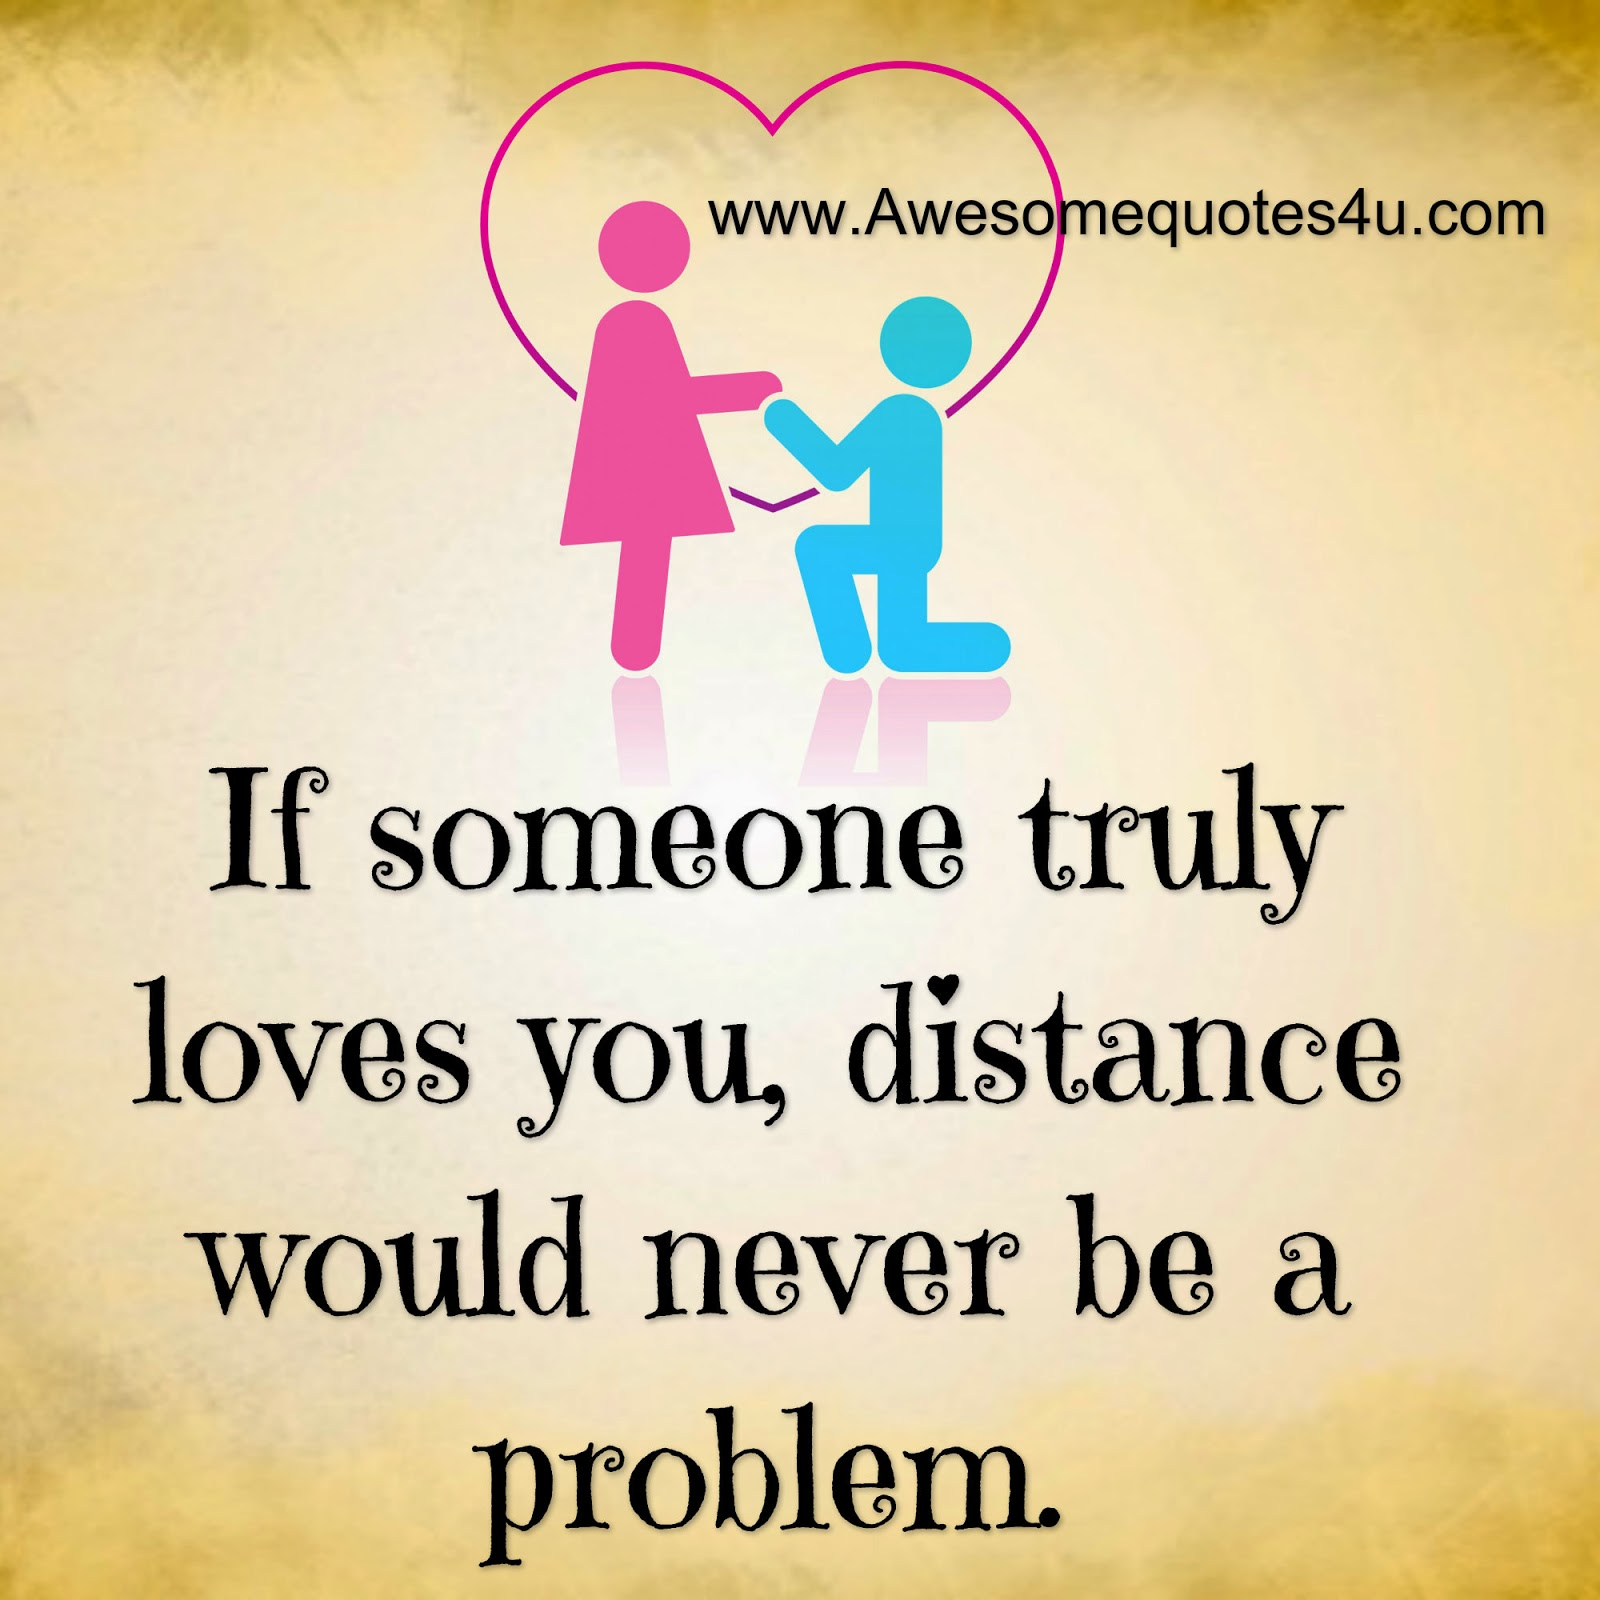 Awesome Quotes: If Someone Truly Loves You